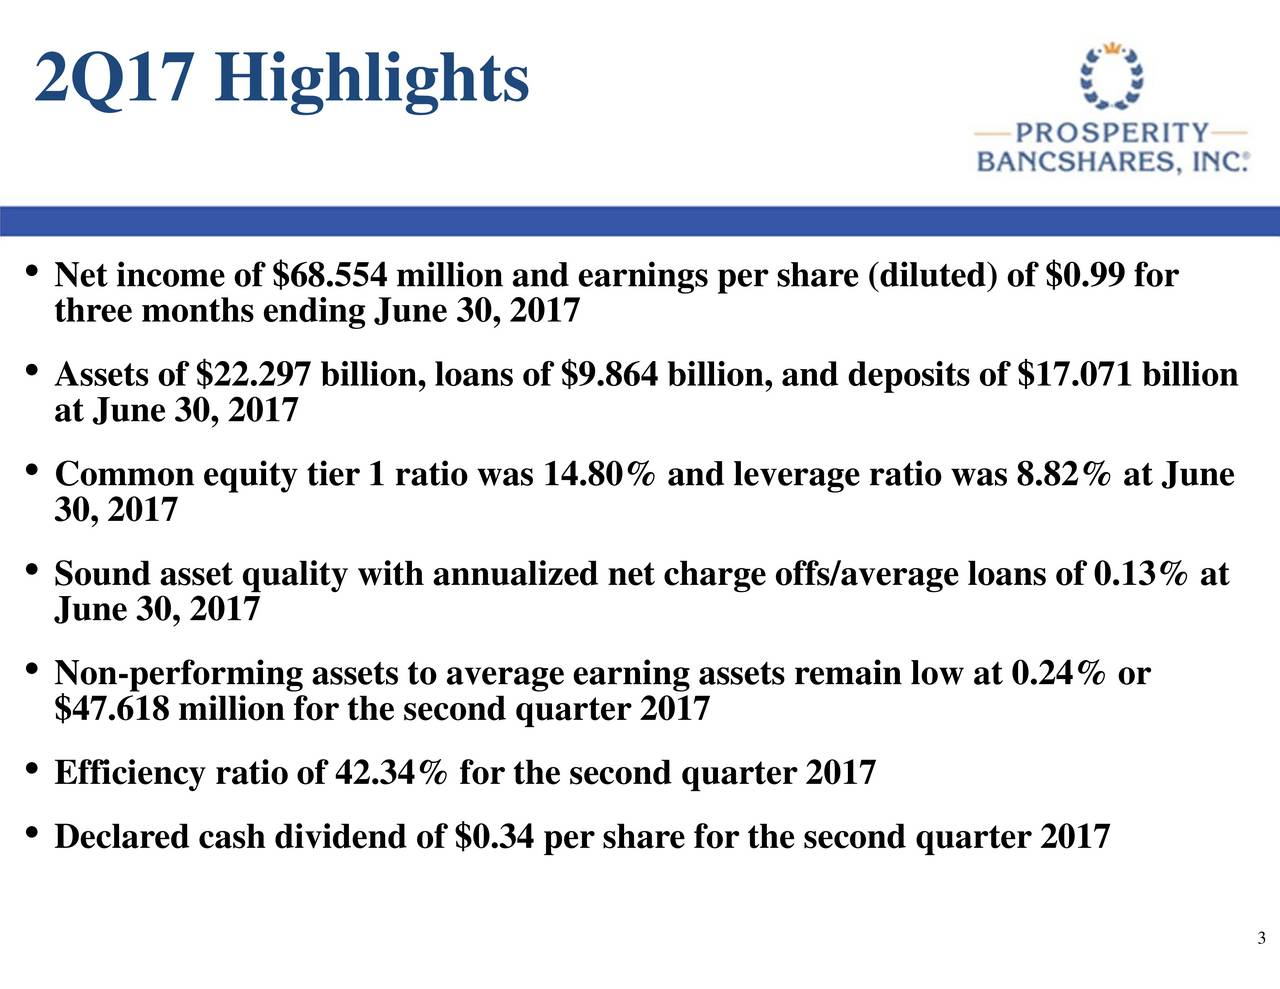 ings per share (diluted) ing assets remain low at 0.24% or 2Q17 Highligts inssetsf602540eqdlonaeo7oceclyhsanb.lf4zasecond quarter 2017